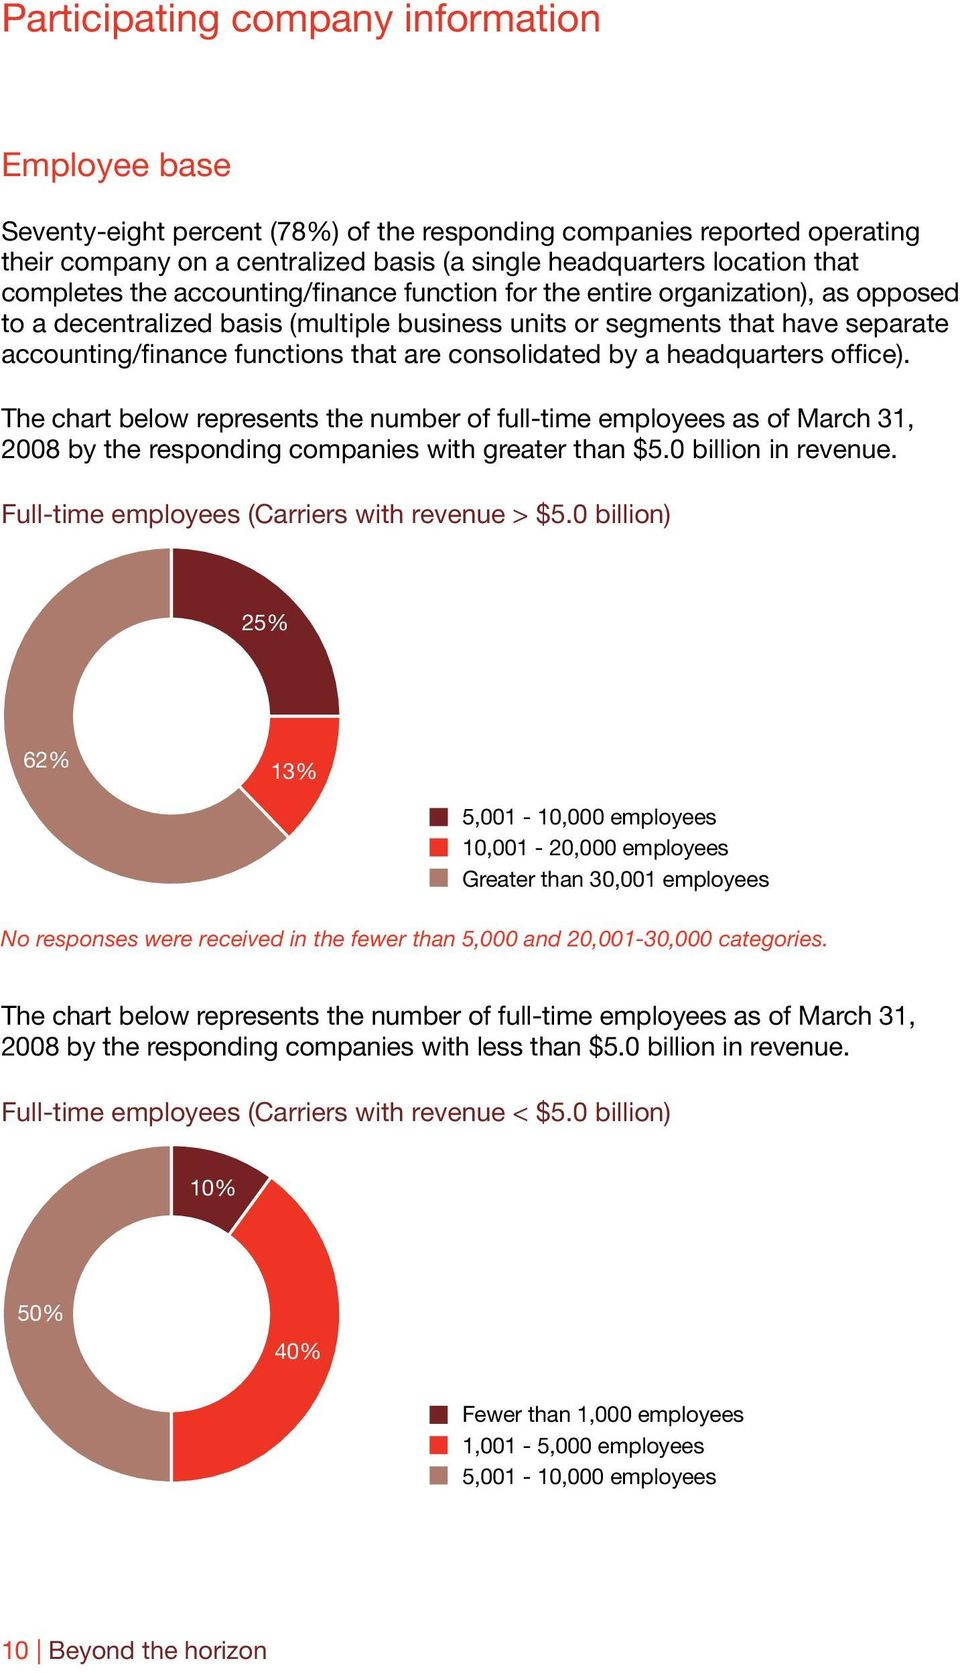 are consolidated by a headquarters office). The chart below represents the number of full-time employees as of March 3, 008 by the responding companies with greater than $5.0 billion in revenue.